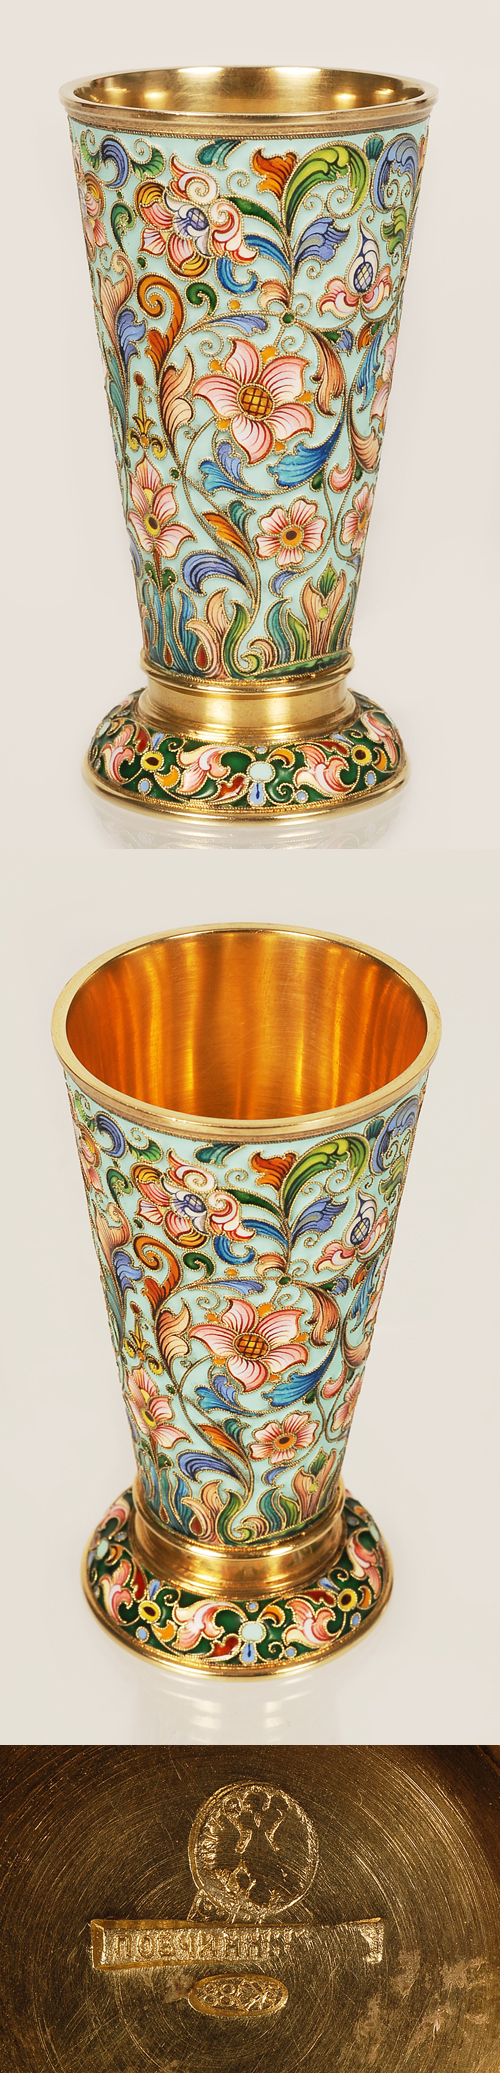 A Russian silver gilt and shaded cloisonne enamel beaker, workmaster Feodor Ruckert, Moscow, circa 1896-1908. Tapering cylindrical form on a domed foot the body enameled with shaded varicolor flowers and stylized scrolling foliage on a light turquoise ground, the foot enameled with similar floral motif on a green ground, the interior is gilt.